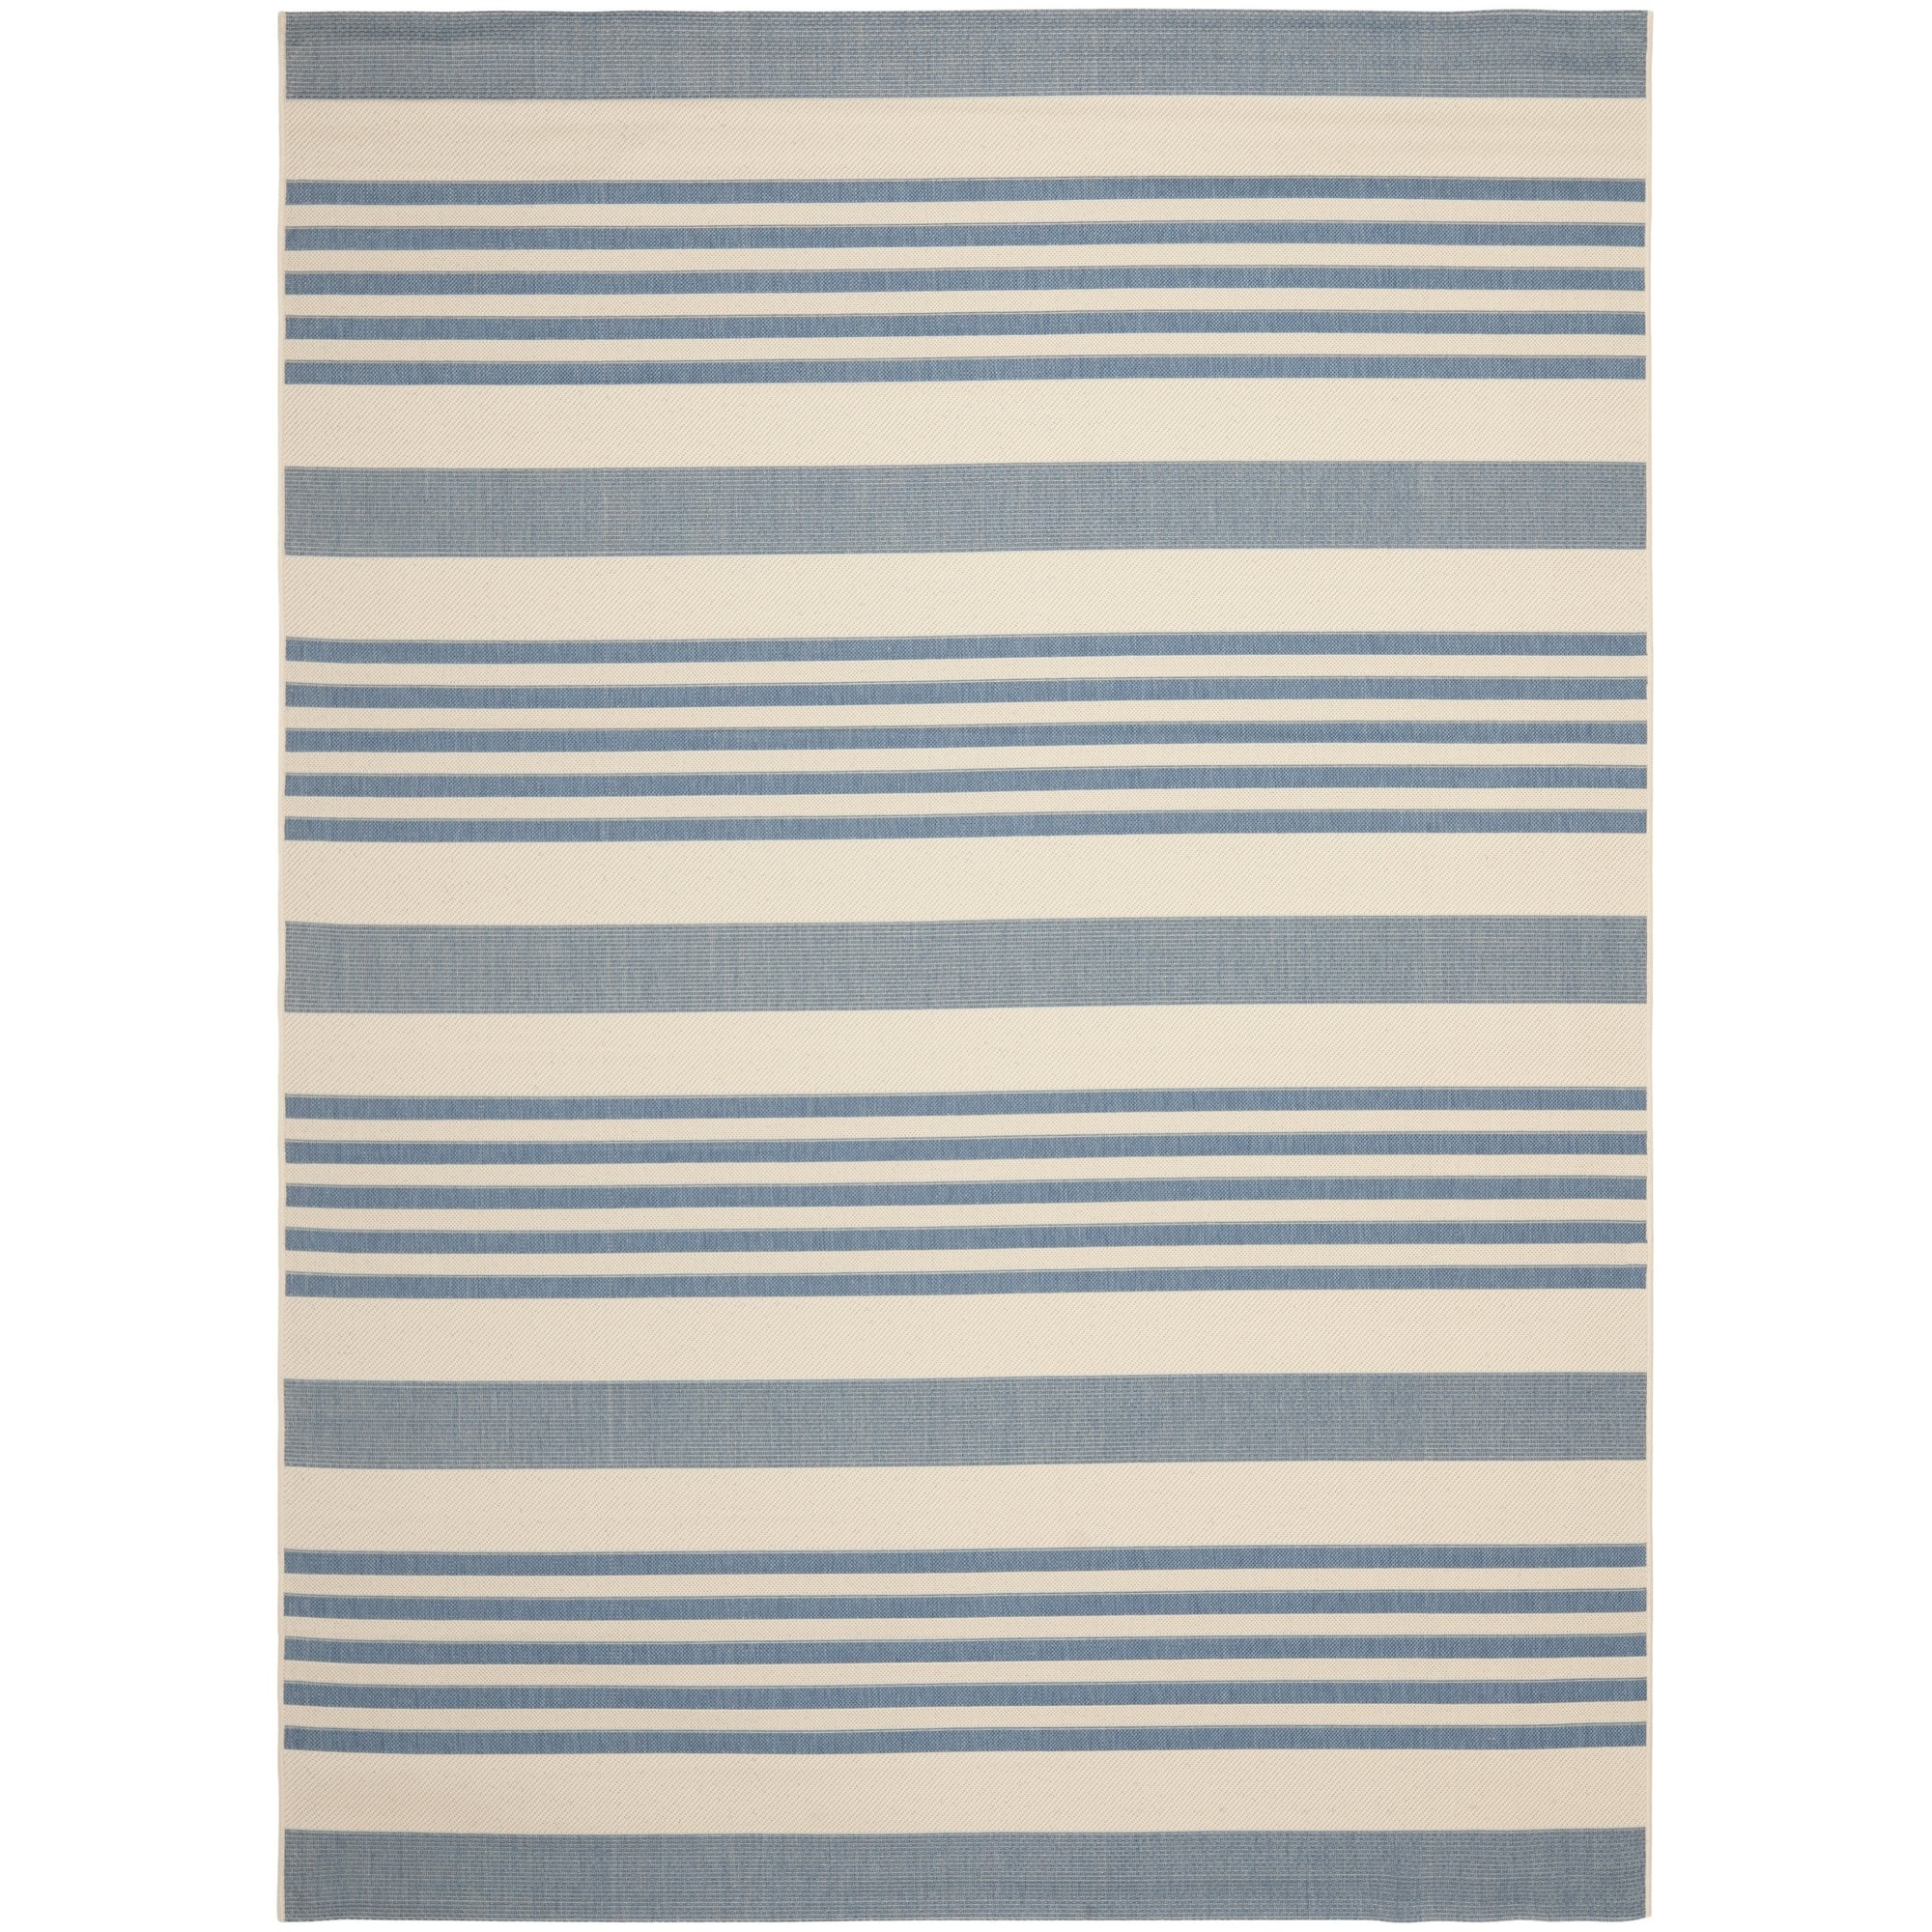 Safavieh Indoor/ Outdoor Courtyard Beige/ Blue Area Rug (9' x 12')